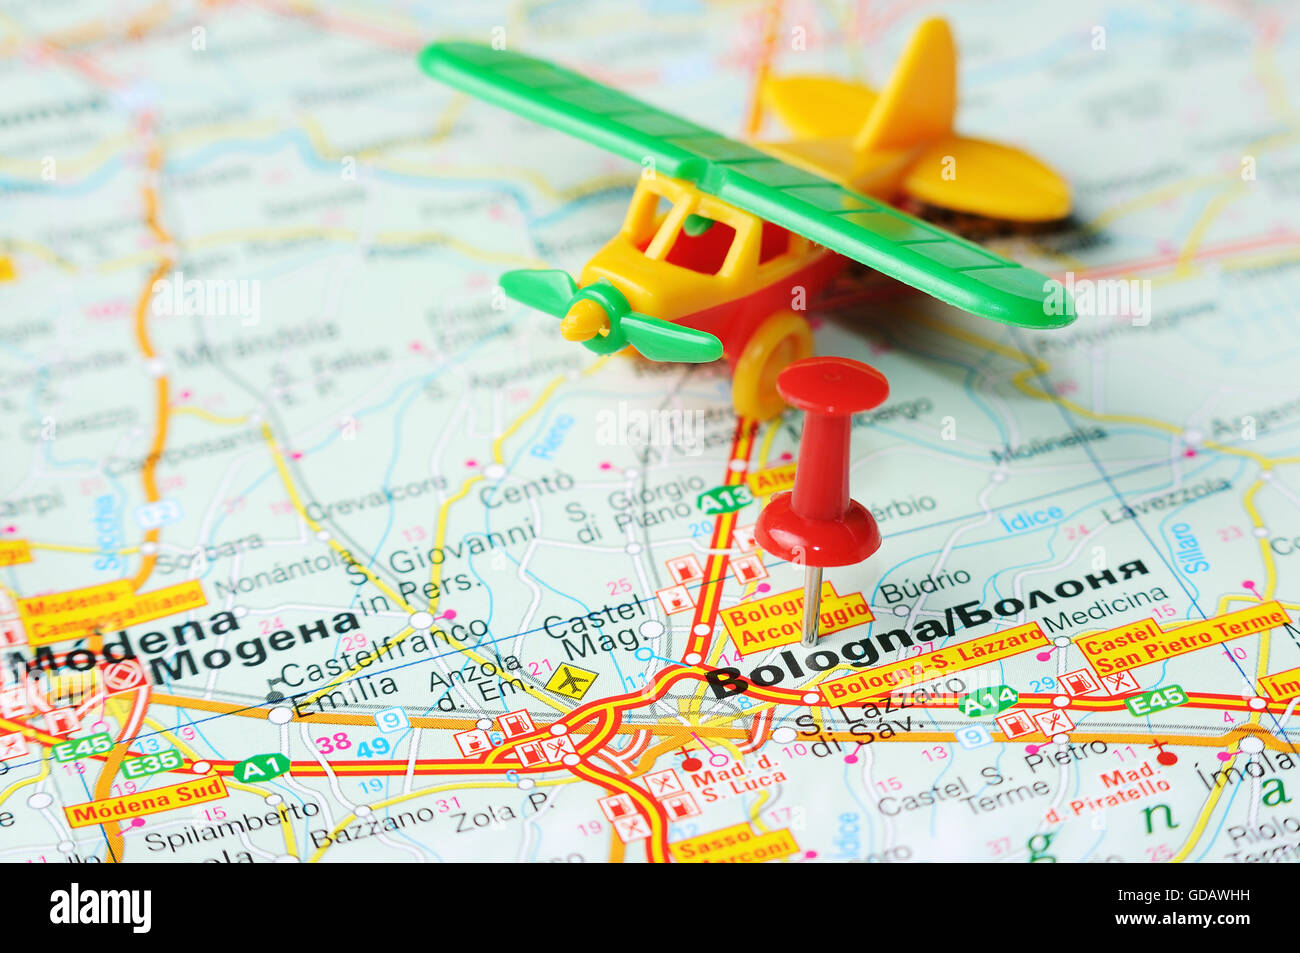 Bologna On Map Of Italy.Close Up Of Bologna Italy Map With Red Pin And Airplane Stock